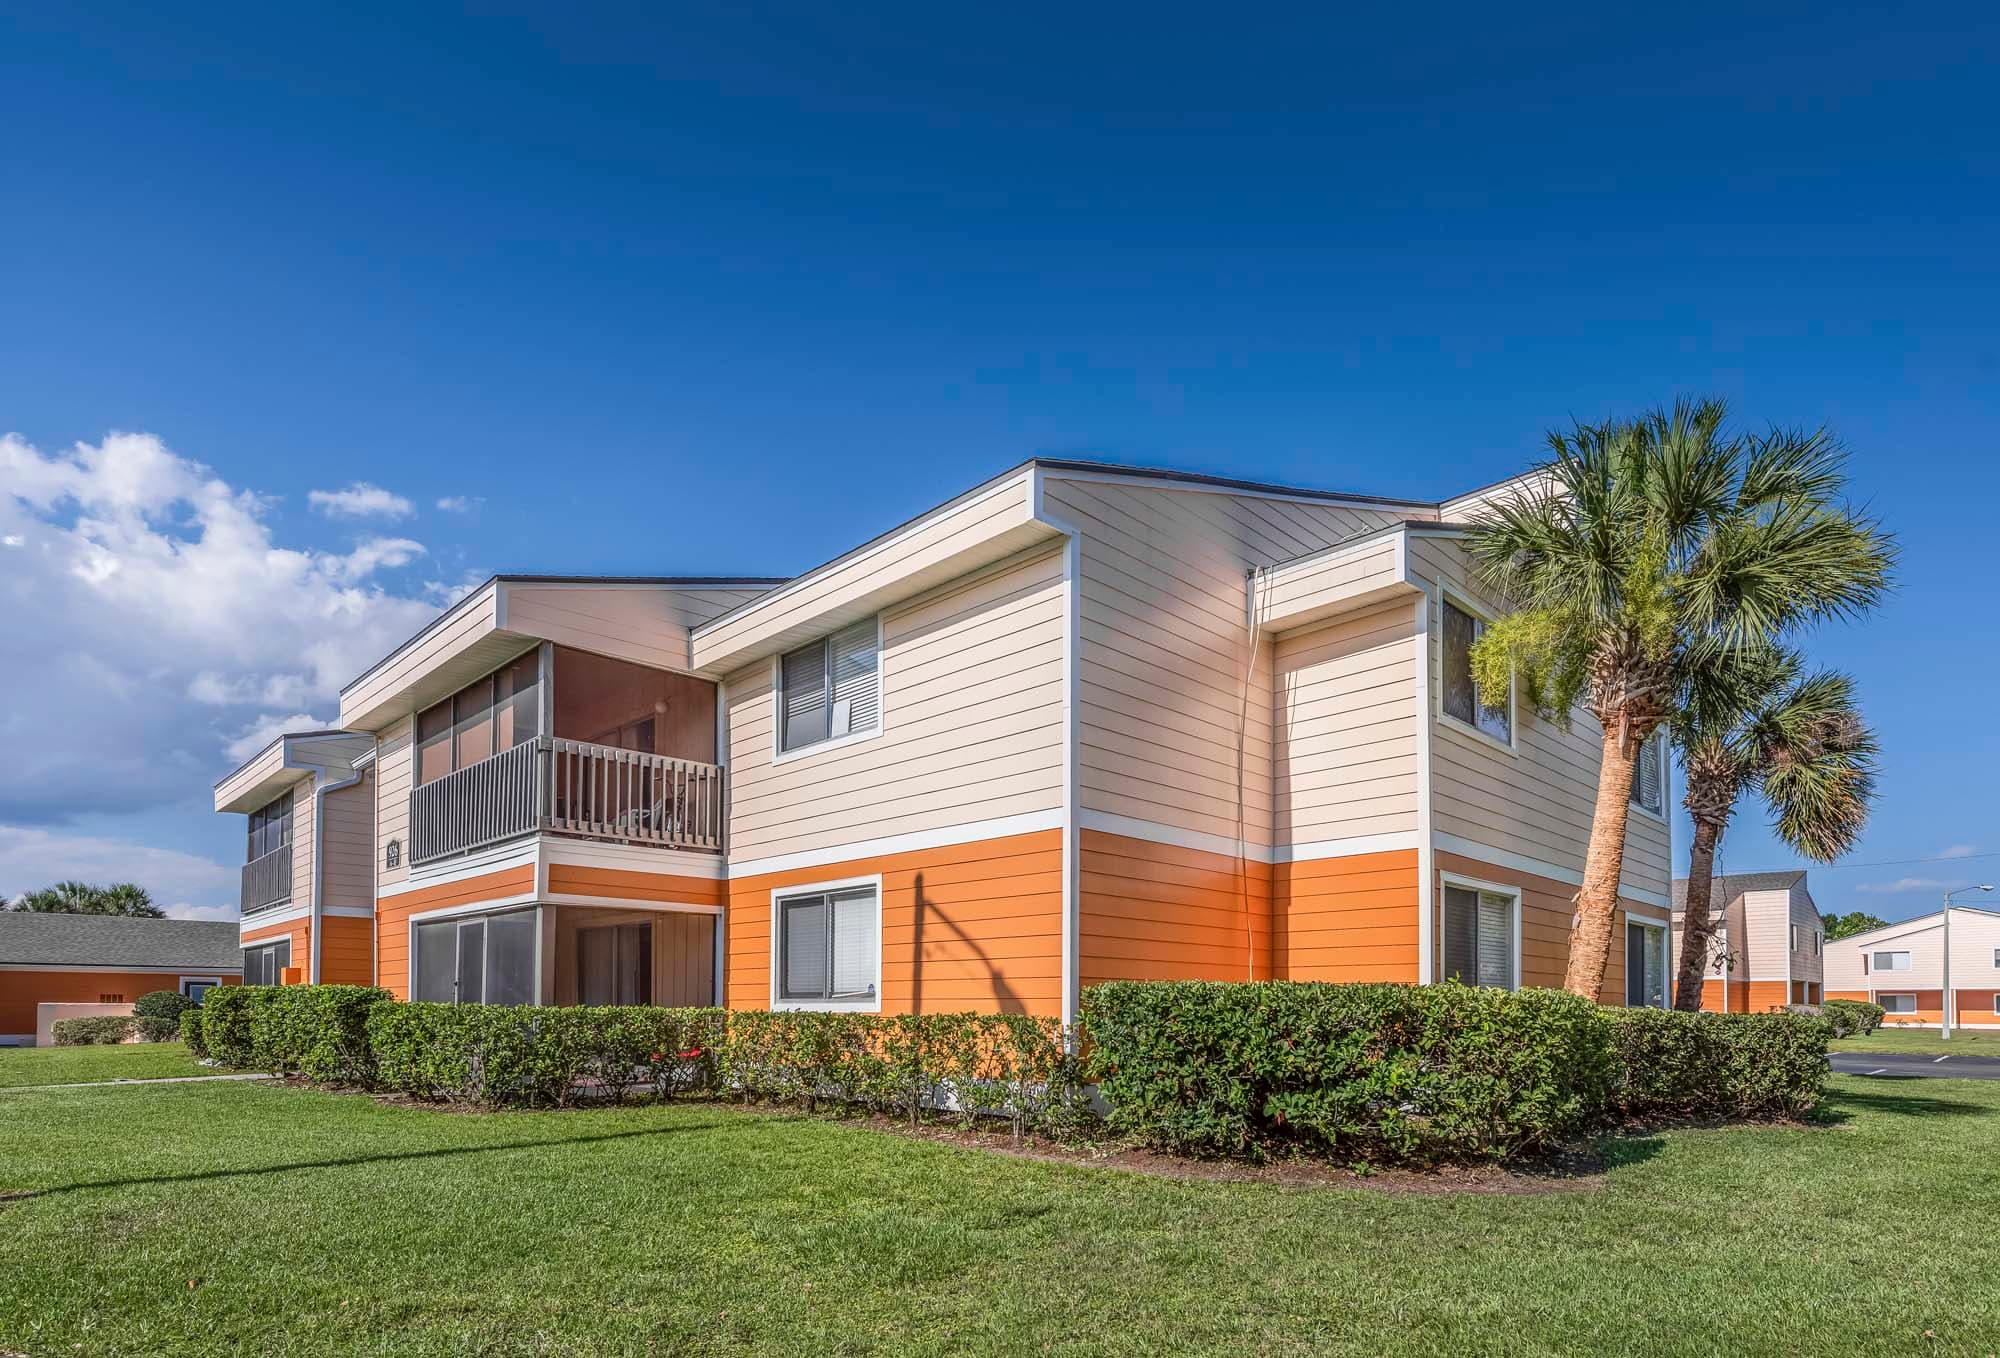 20 Best 1 Bedroom Apartments In Kissimmee Fl With Pics